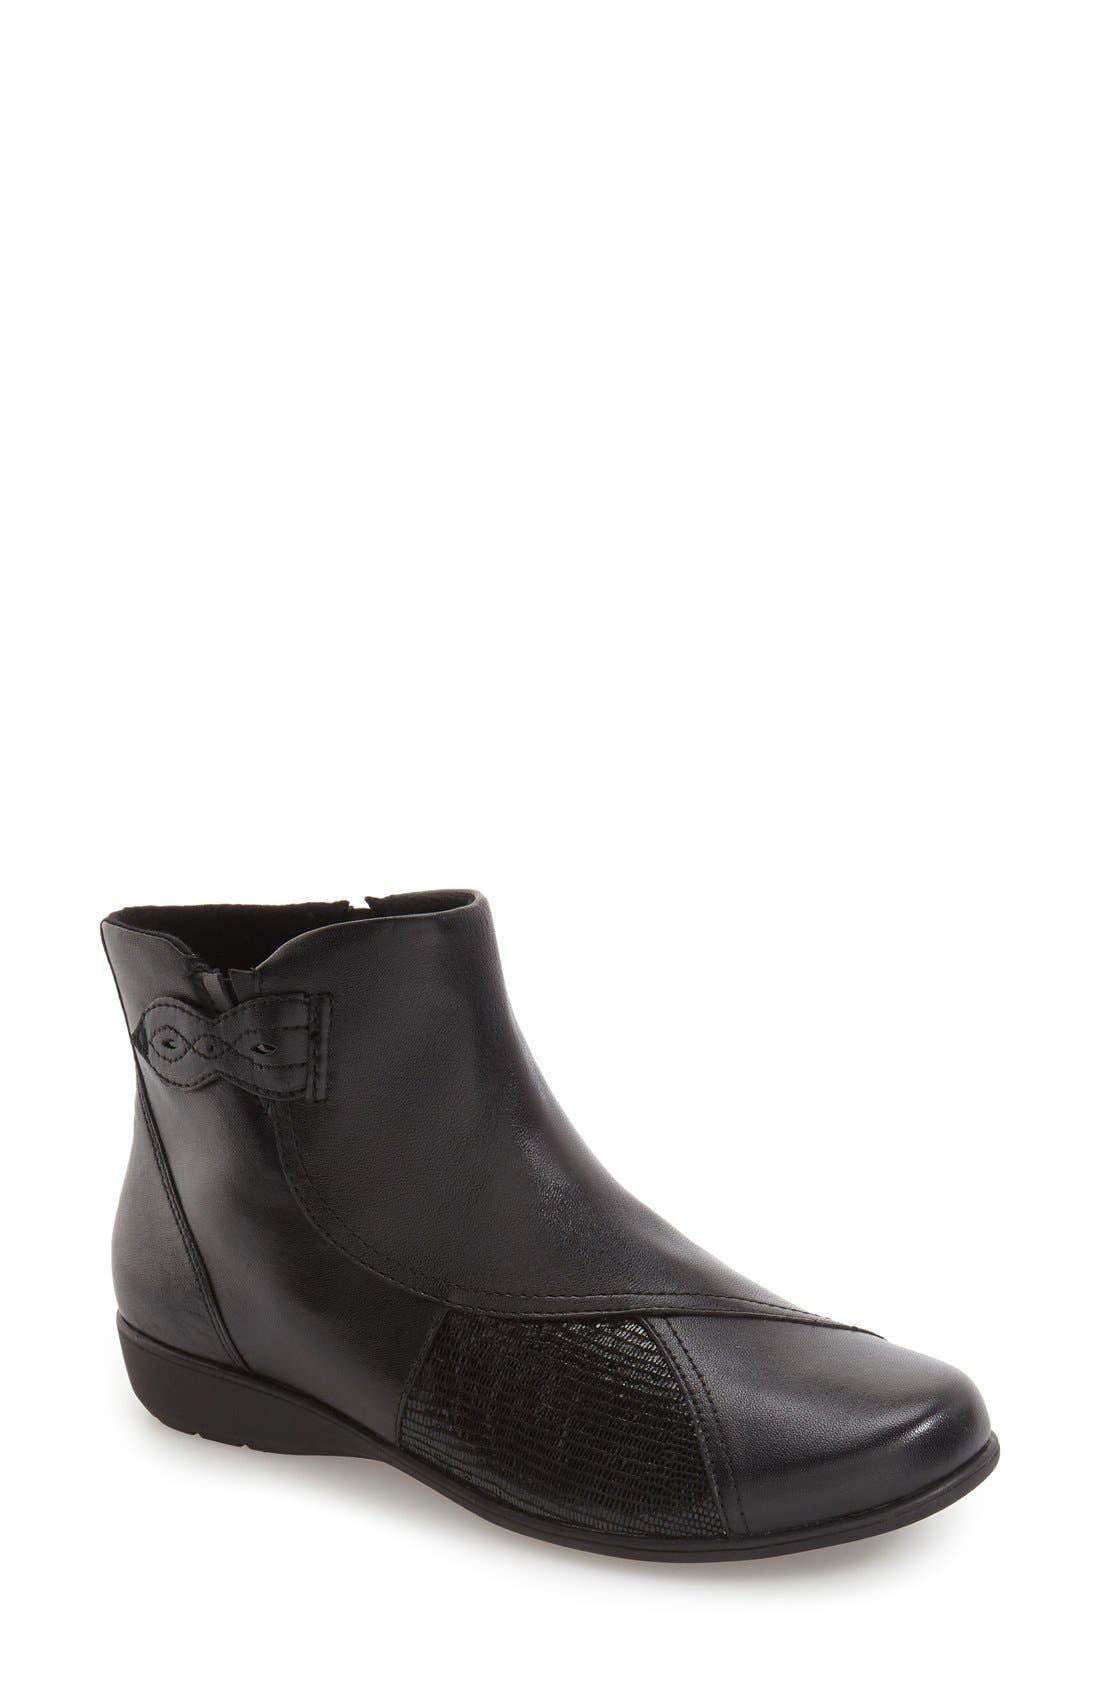 'Anstice' Wedge Bootie,                             Main thumbnail 1, color,                             Black Leather